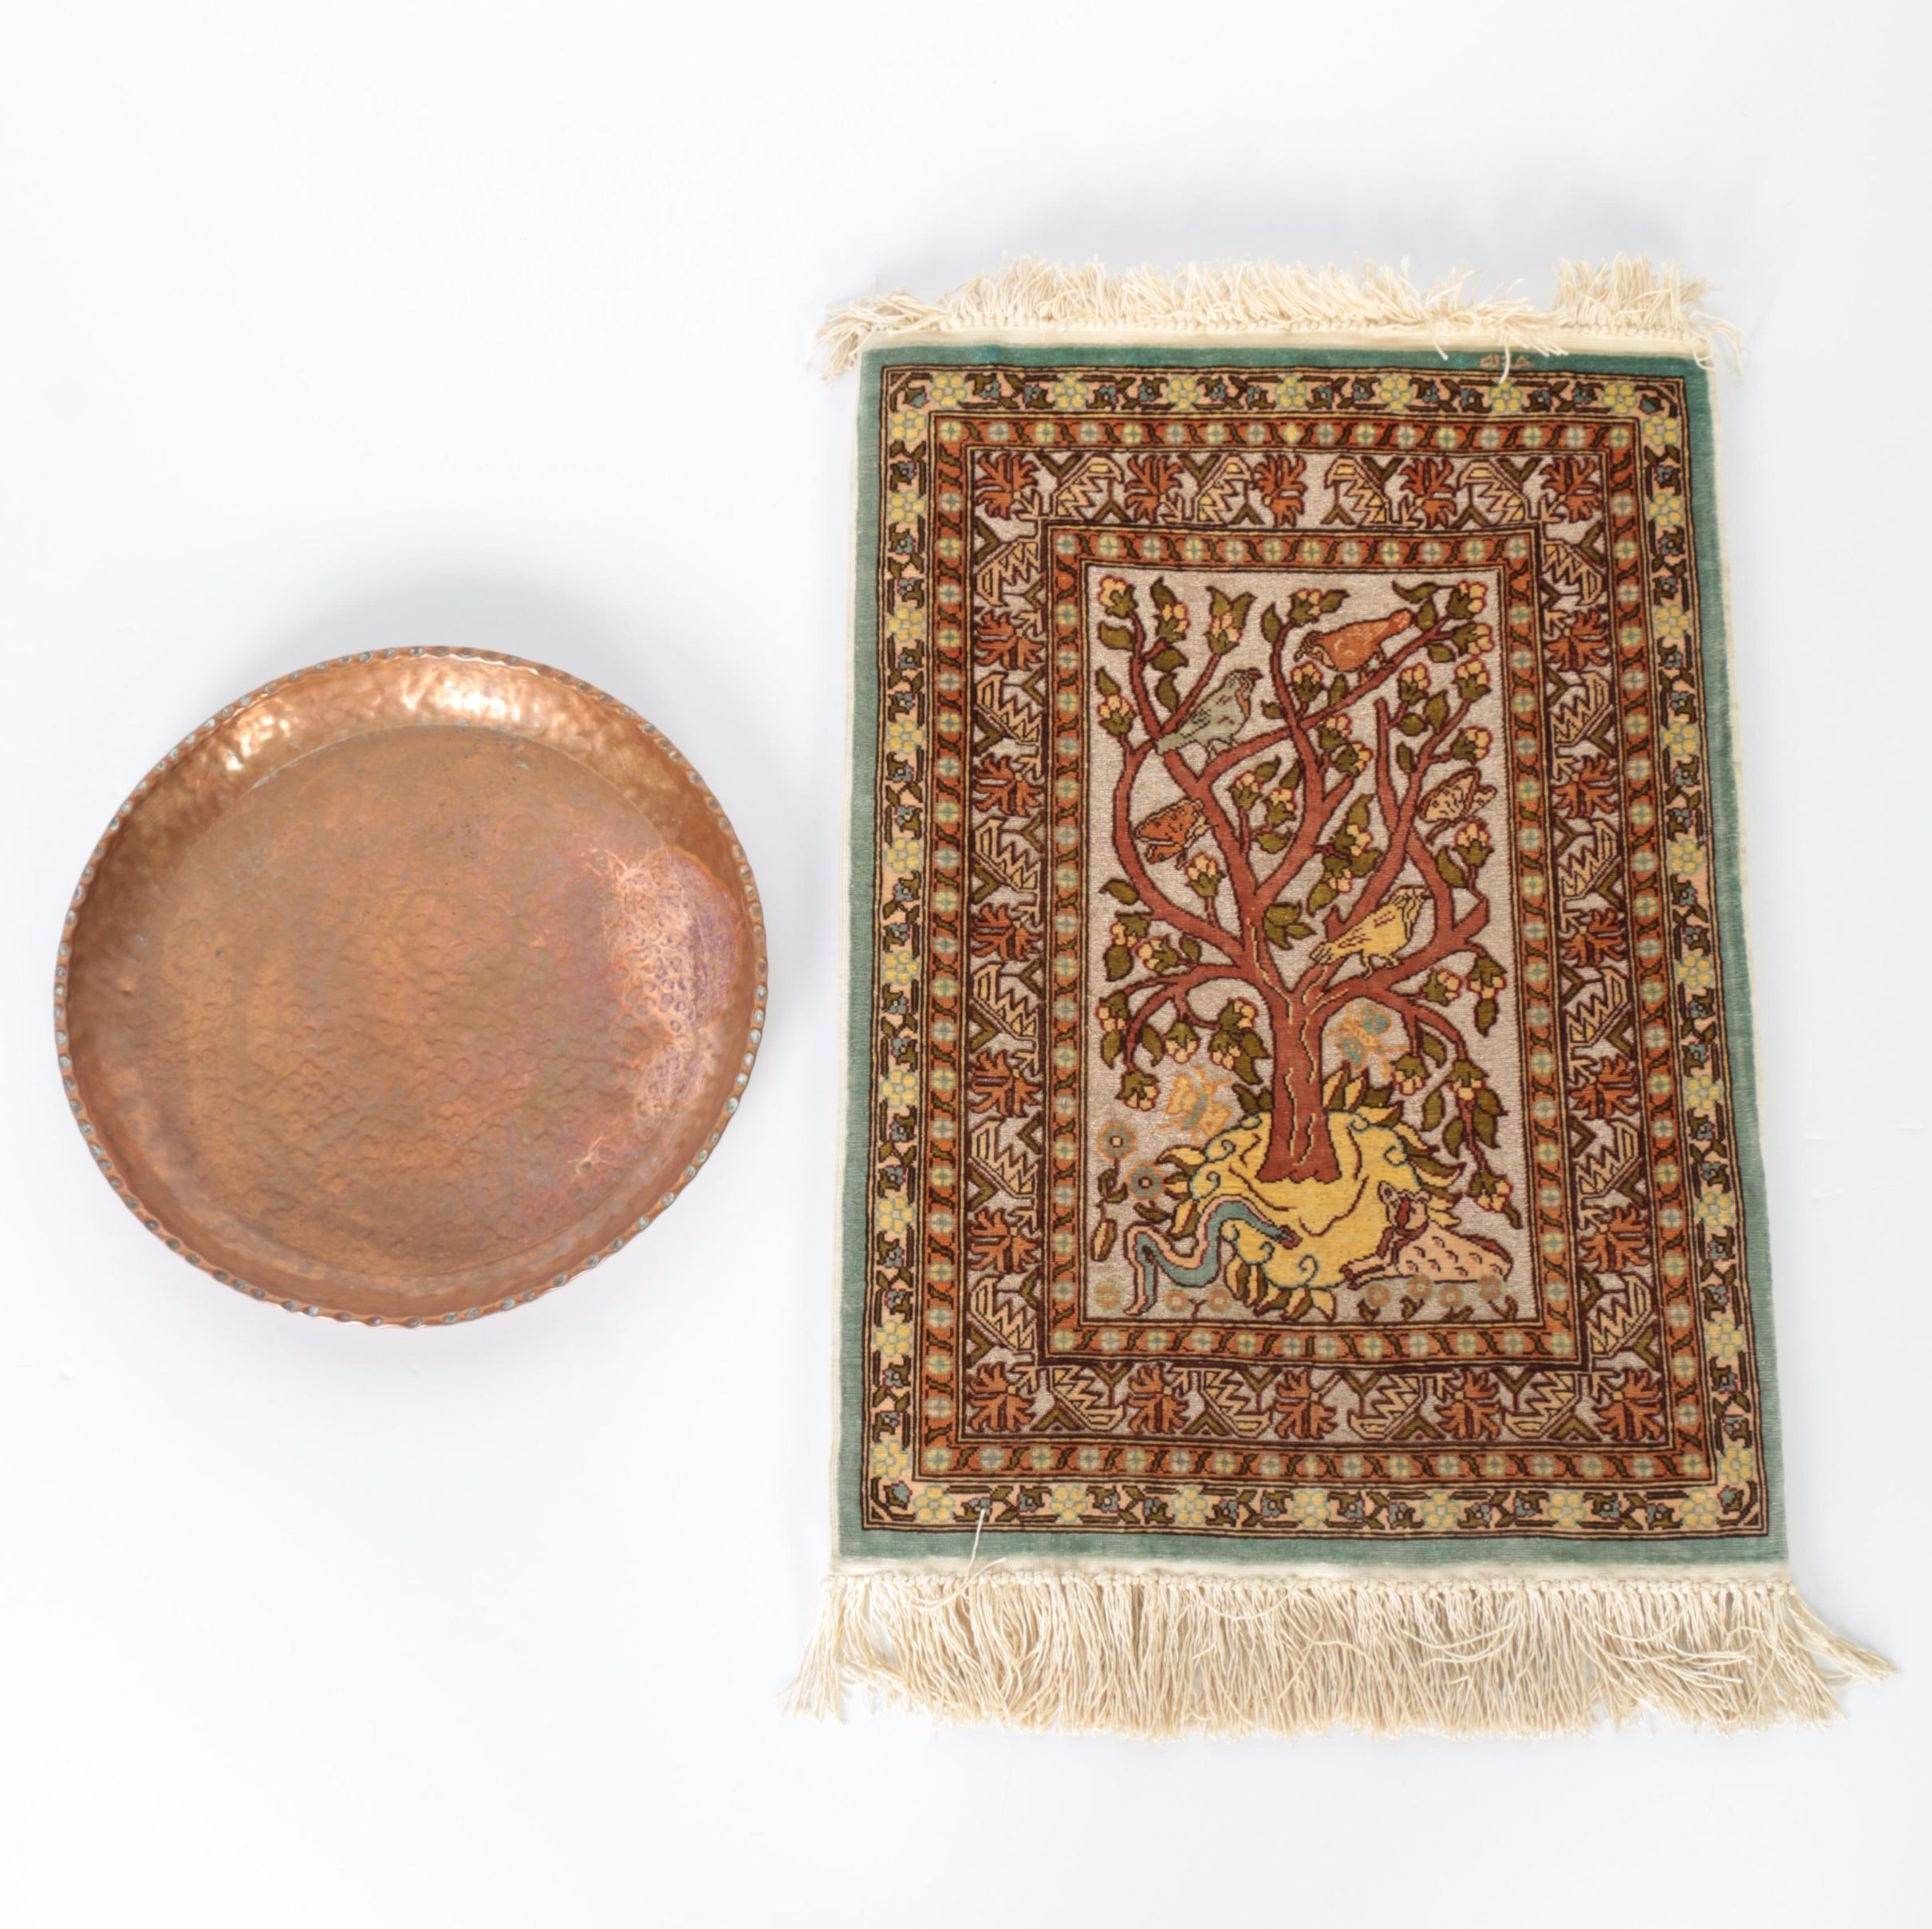 Hand-Knotted Silk Rug and Copper Plate